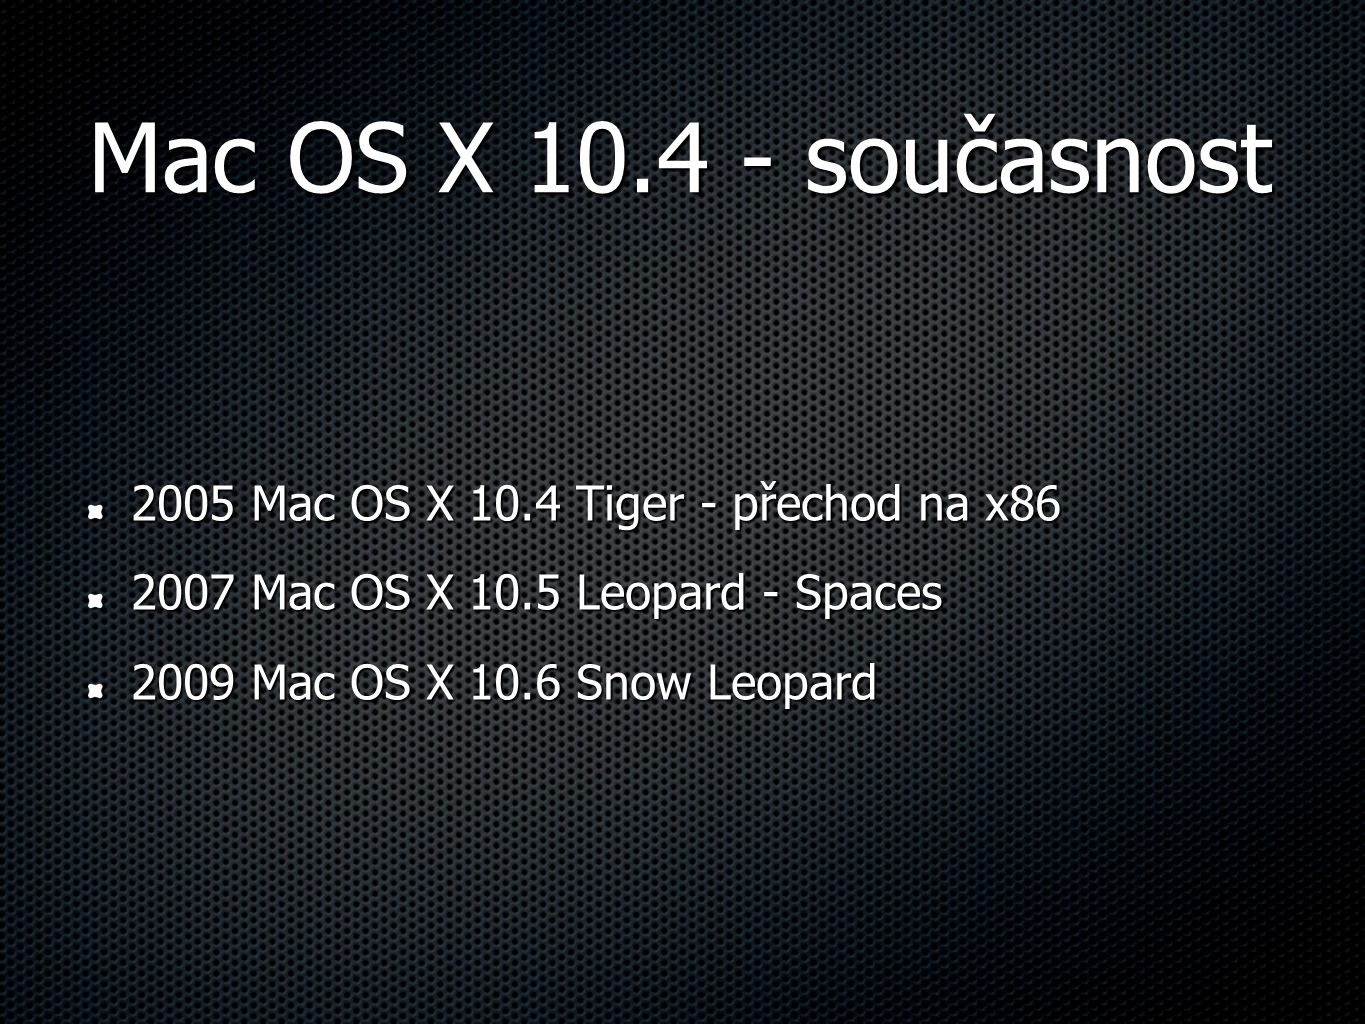 Mac OS X 10.4 - současnost 2005 Mac OS X 10.4 Tiger - přechod na x86 2007 Mac OS X 10.5 Leopard - Spaces 2009 Mac OS X 10.6 Snow Leopard